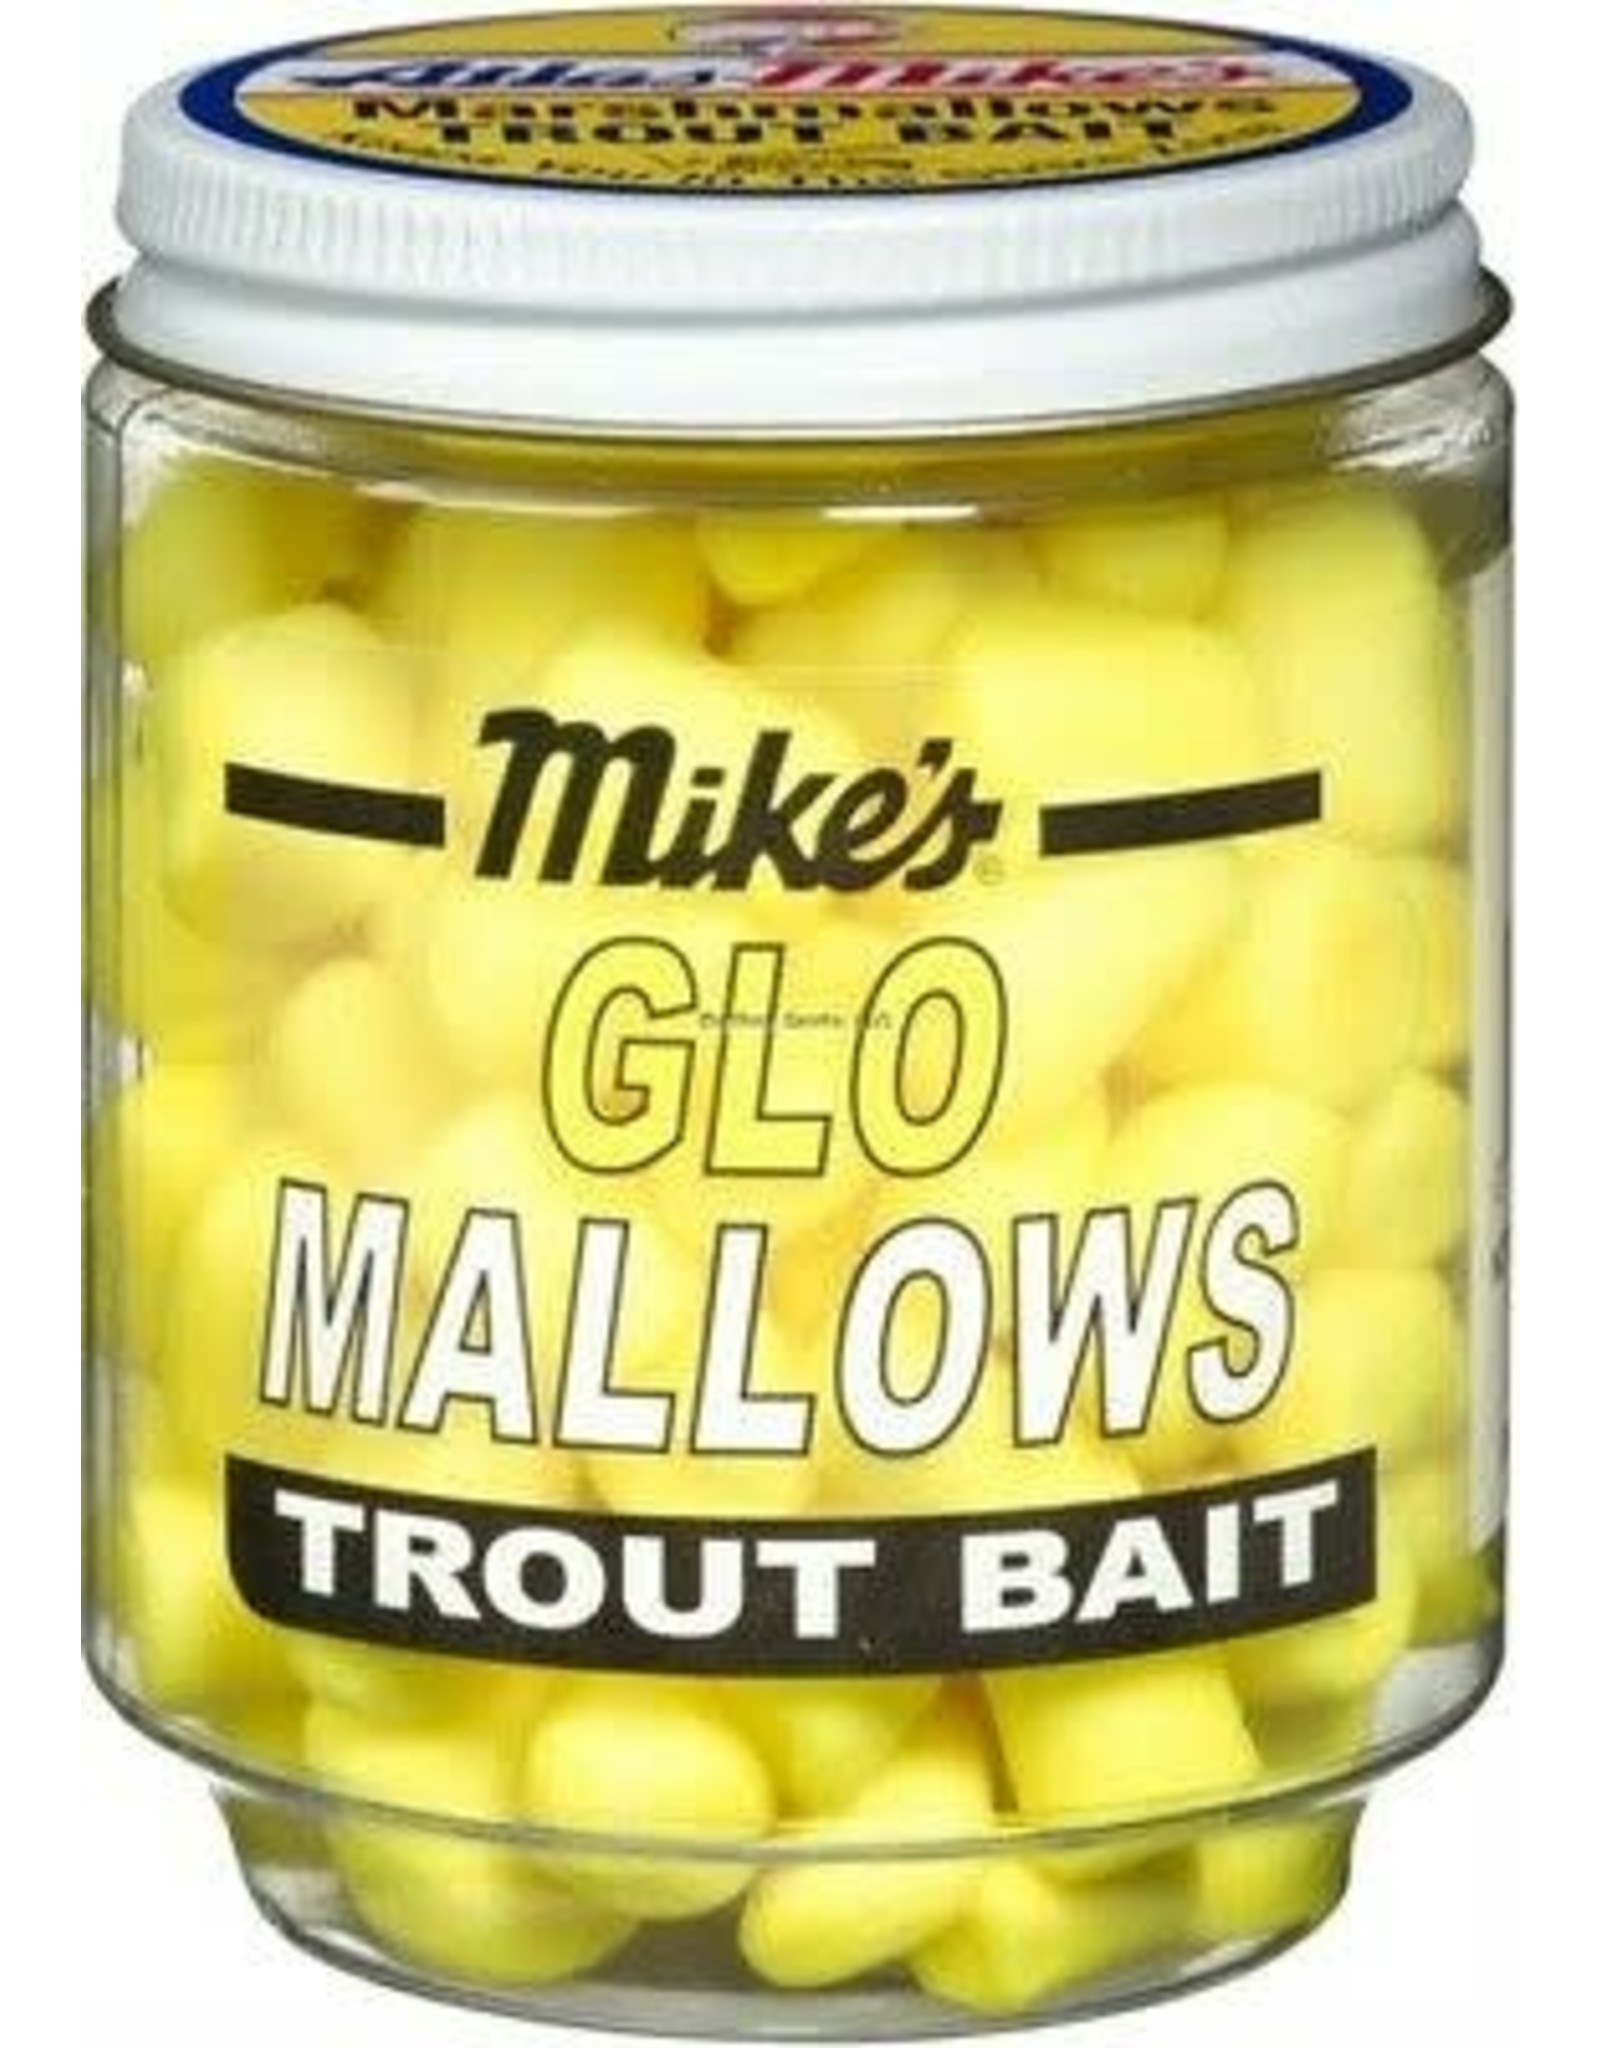 Atlas Mikes Marshmallows Trout Bait - Yellow Cheese